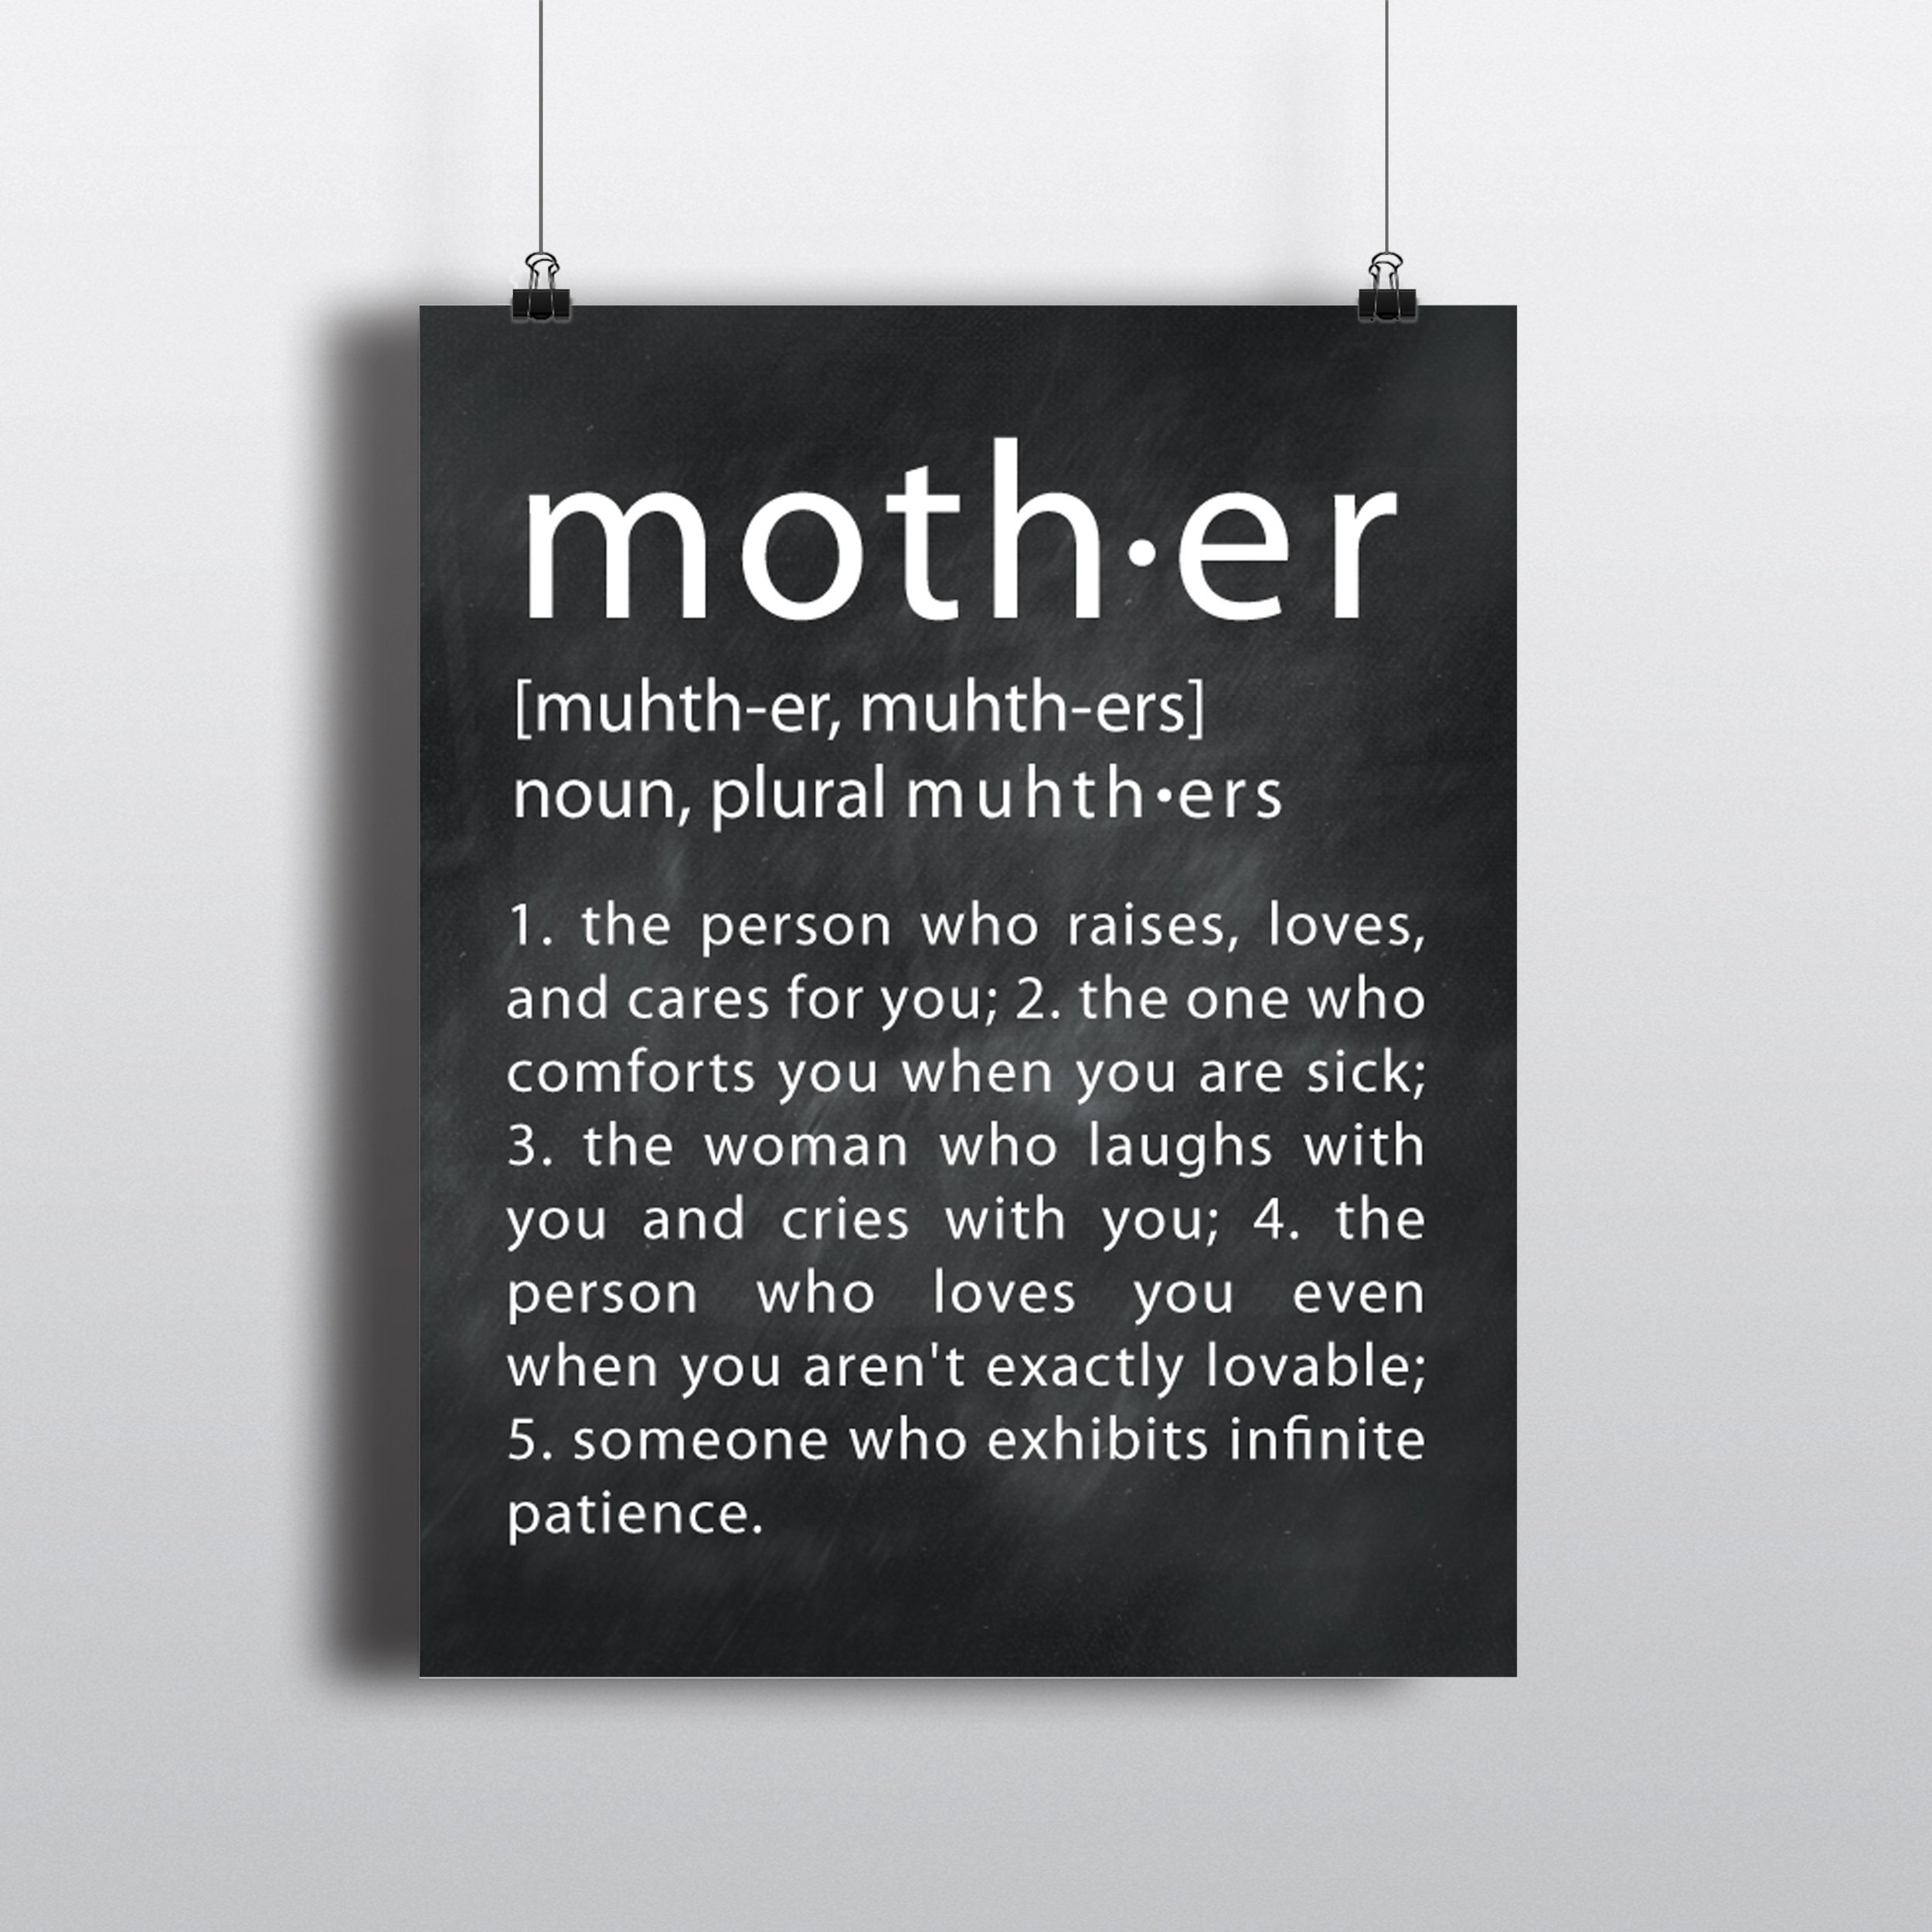 Mother-definition.jpg